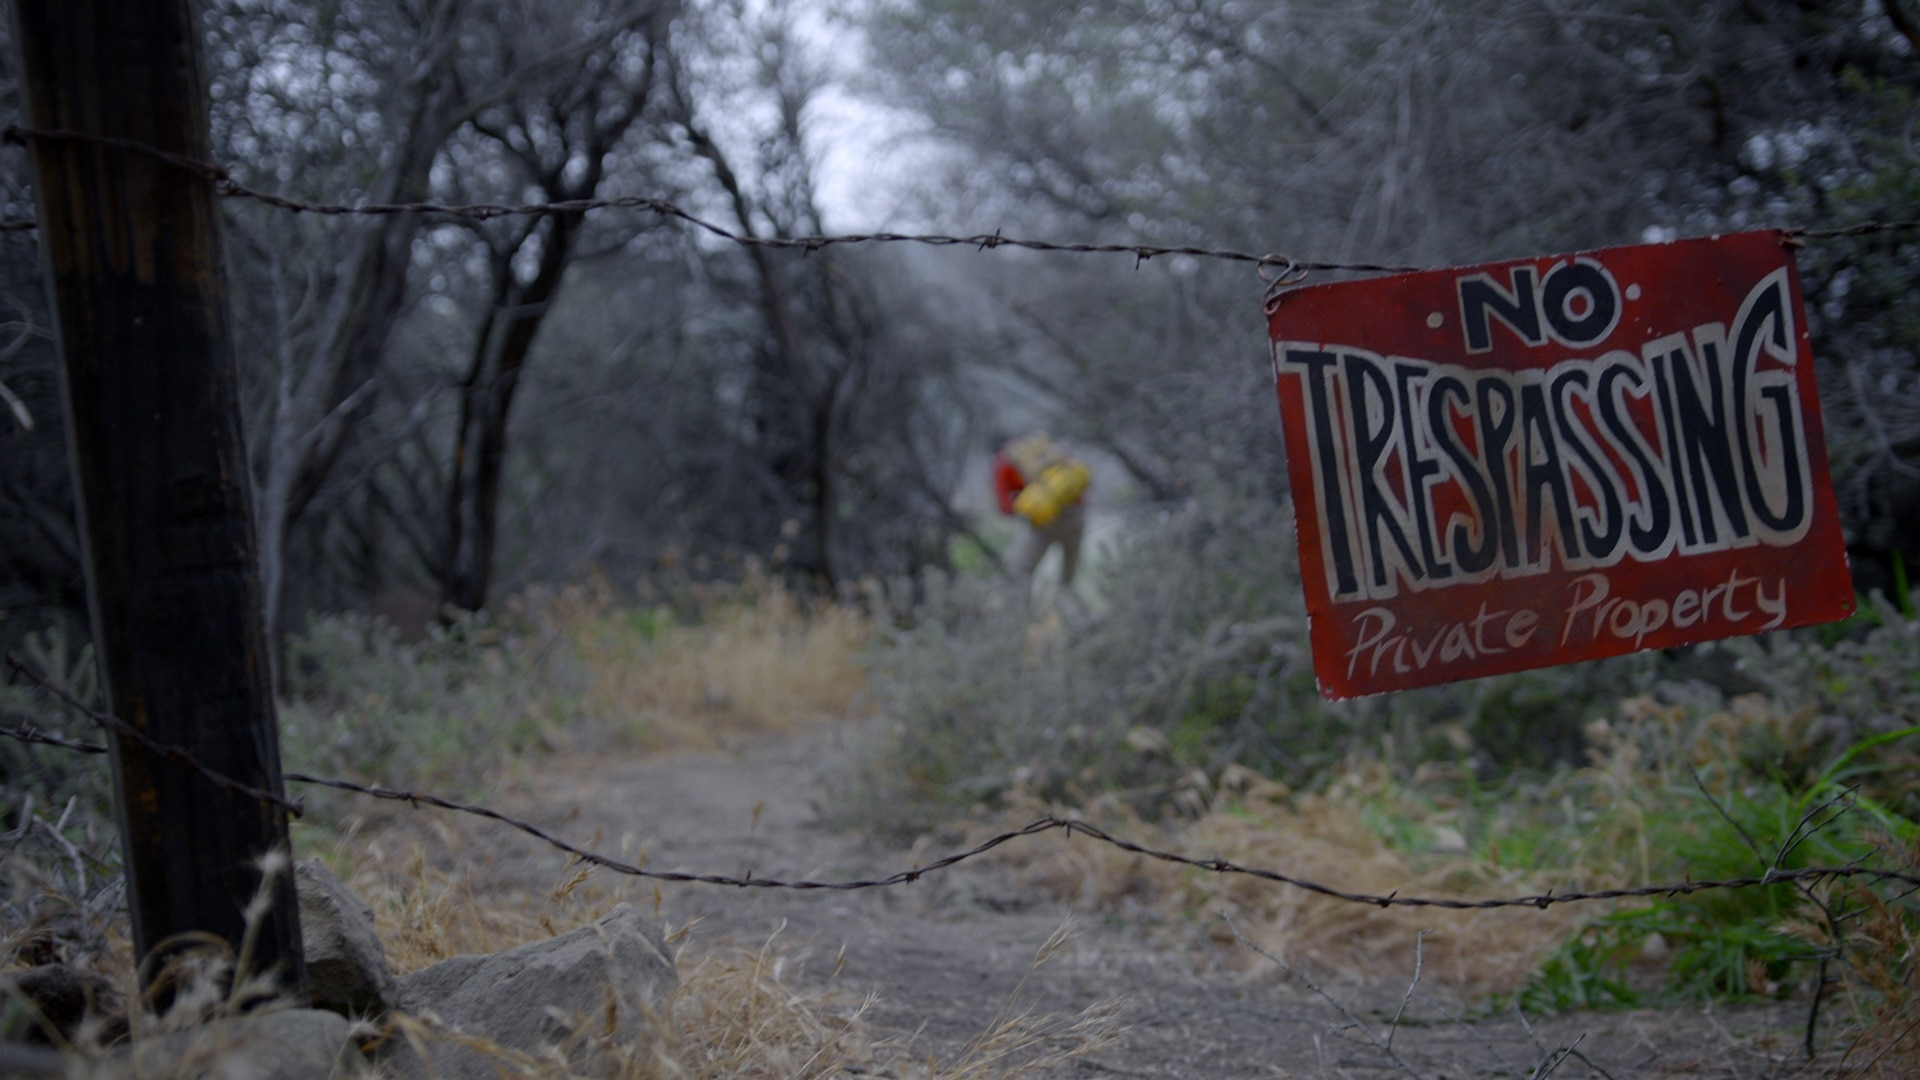 neverhikealone ths pro photo 01 - Exclusive: Friday the 13th Goes Found Footage in Fan Film Never Hike Alone